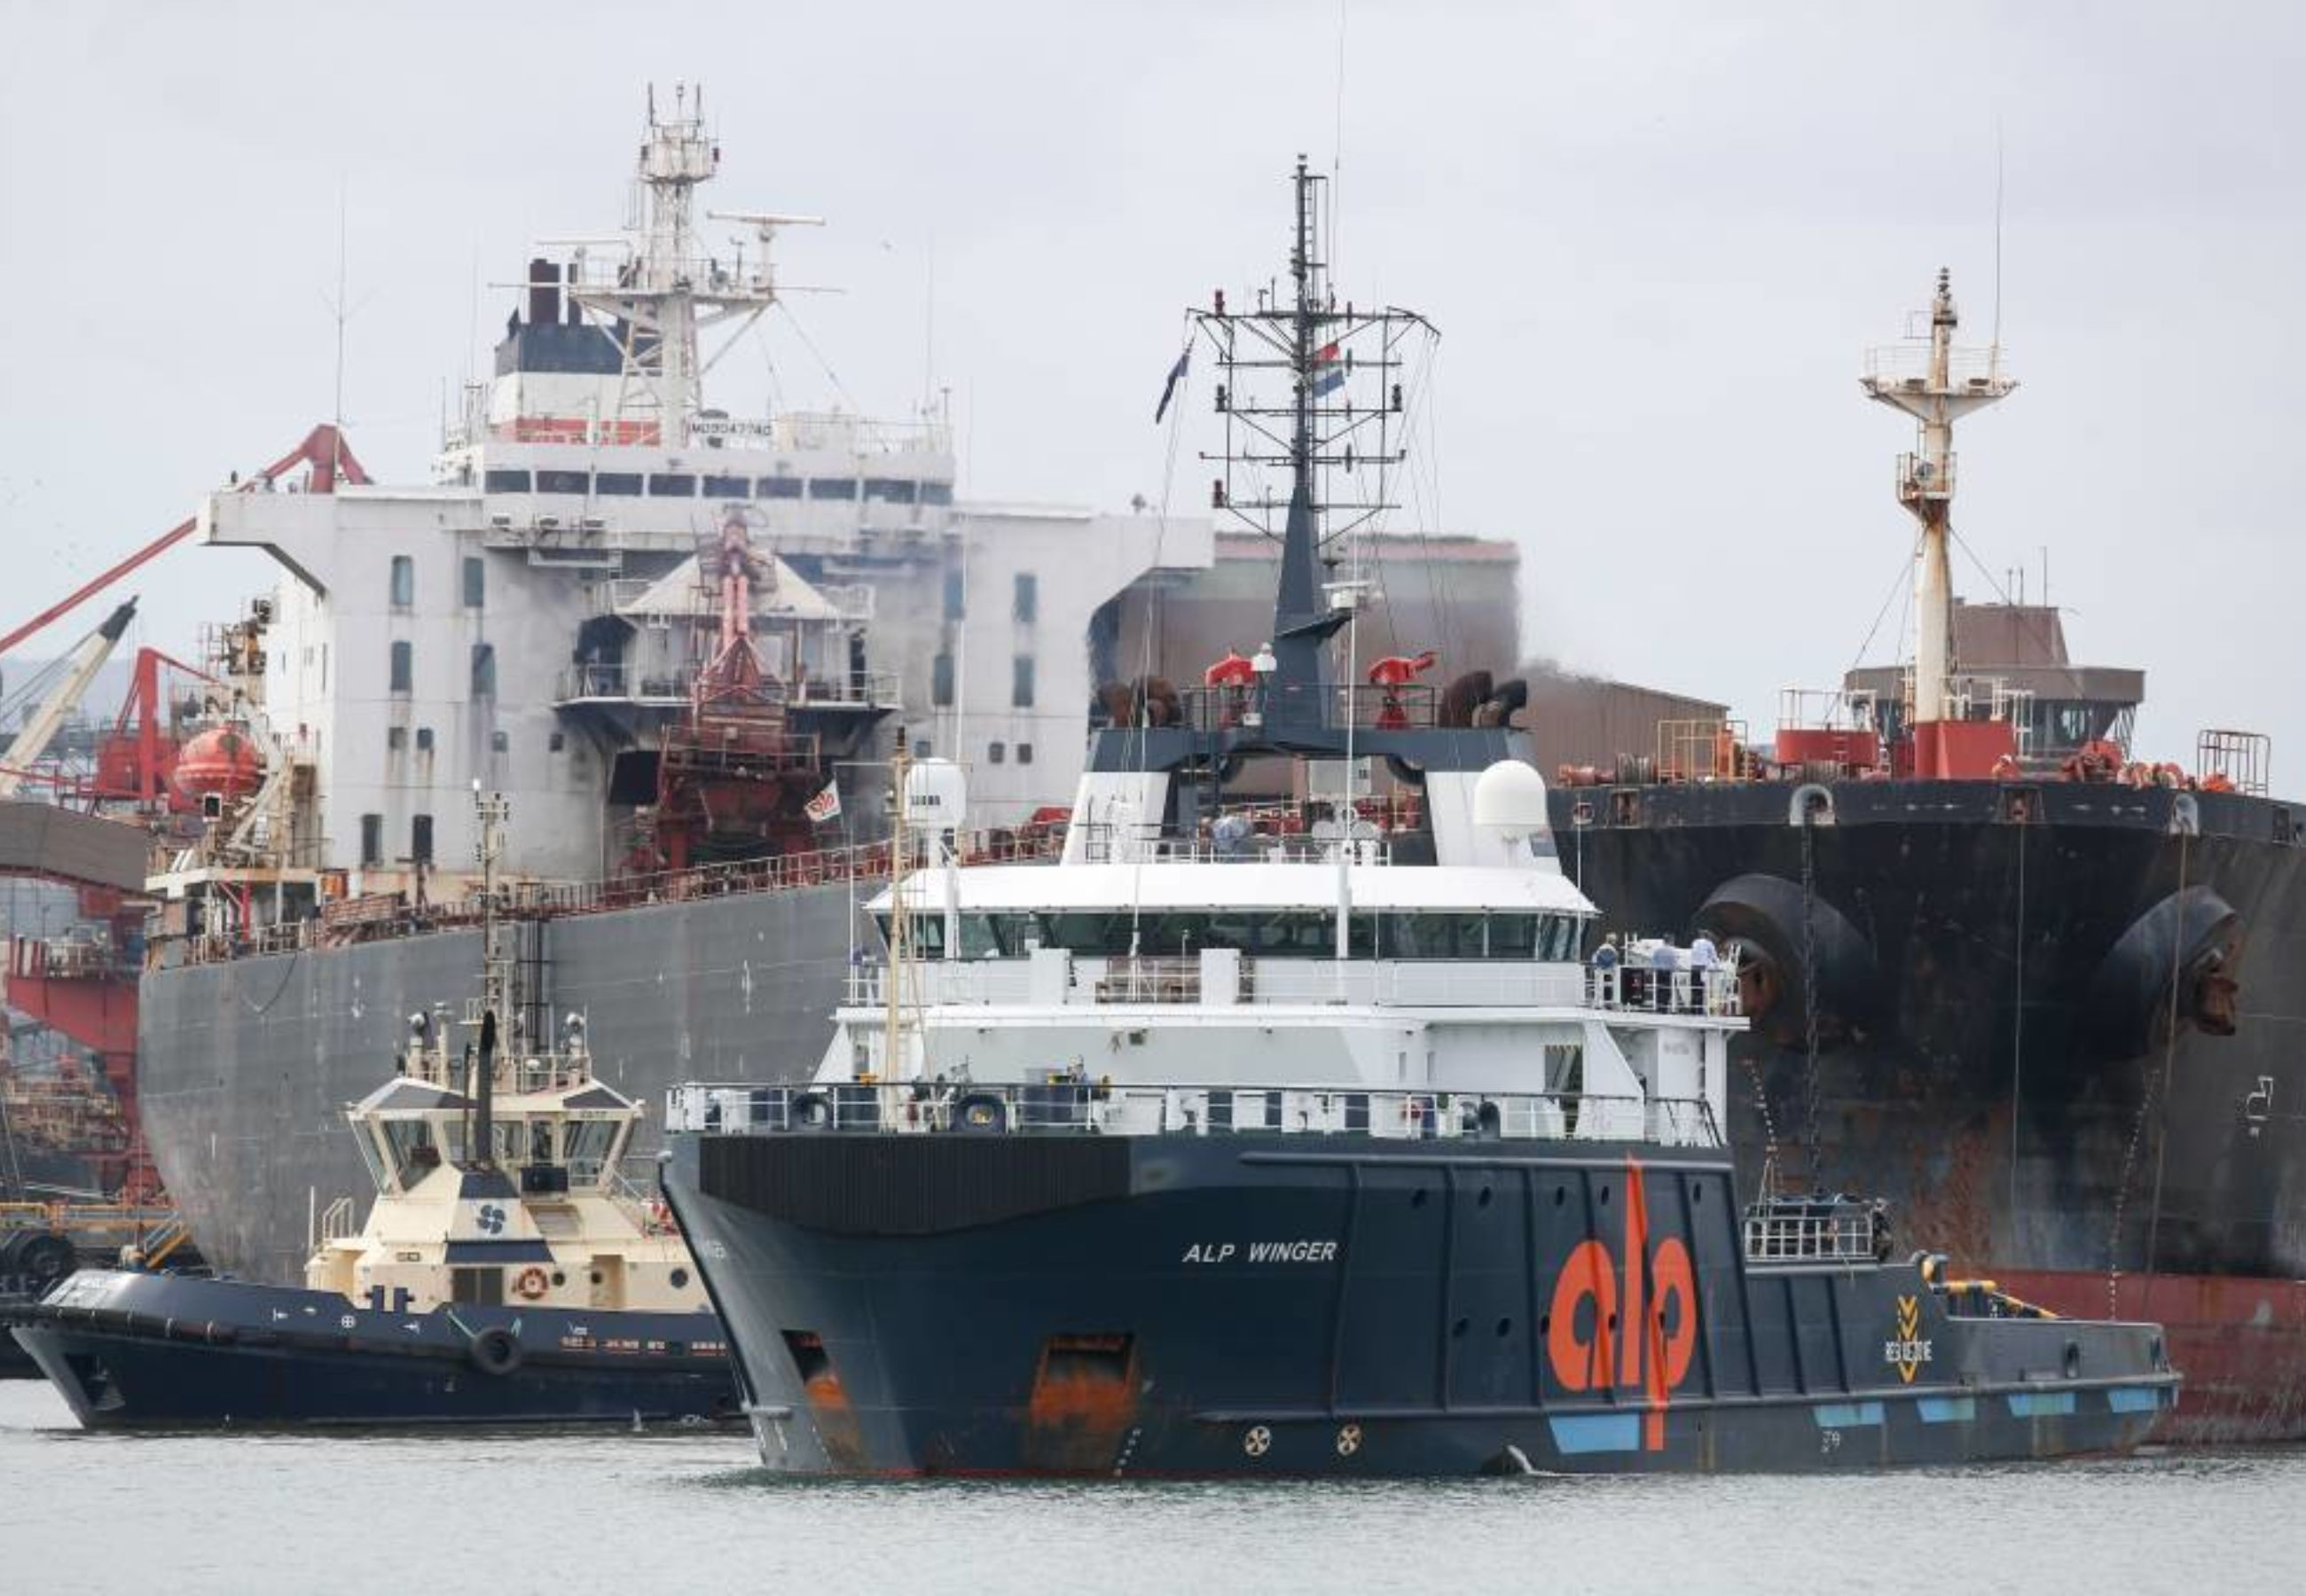 ALP Winger towing Iron Chieftain from Port Kembla Asutralia 2